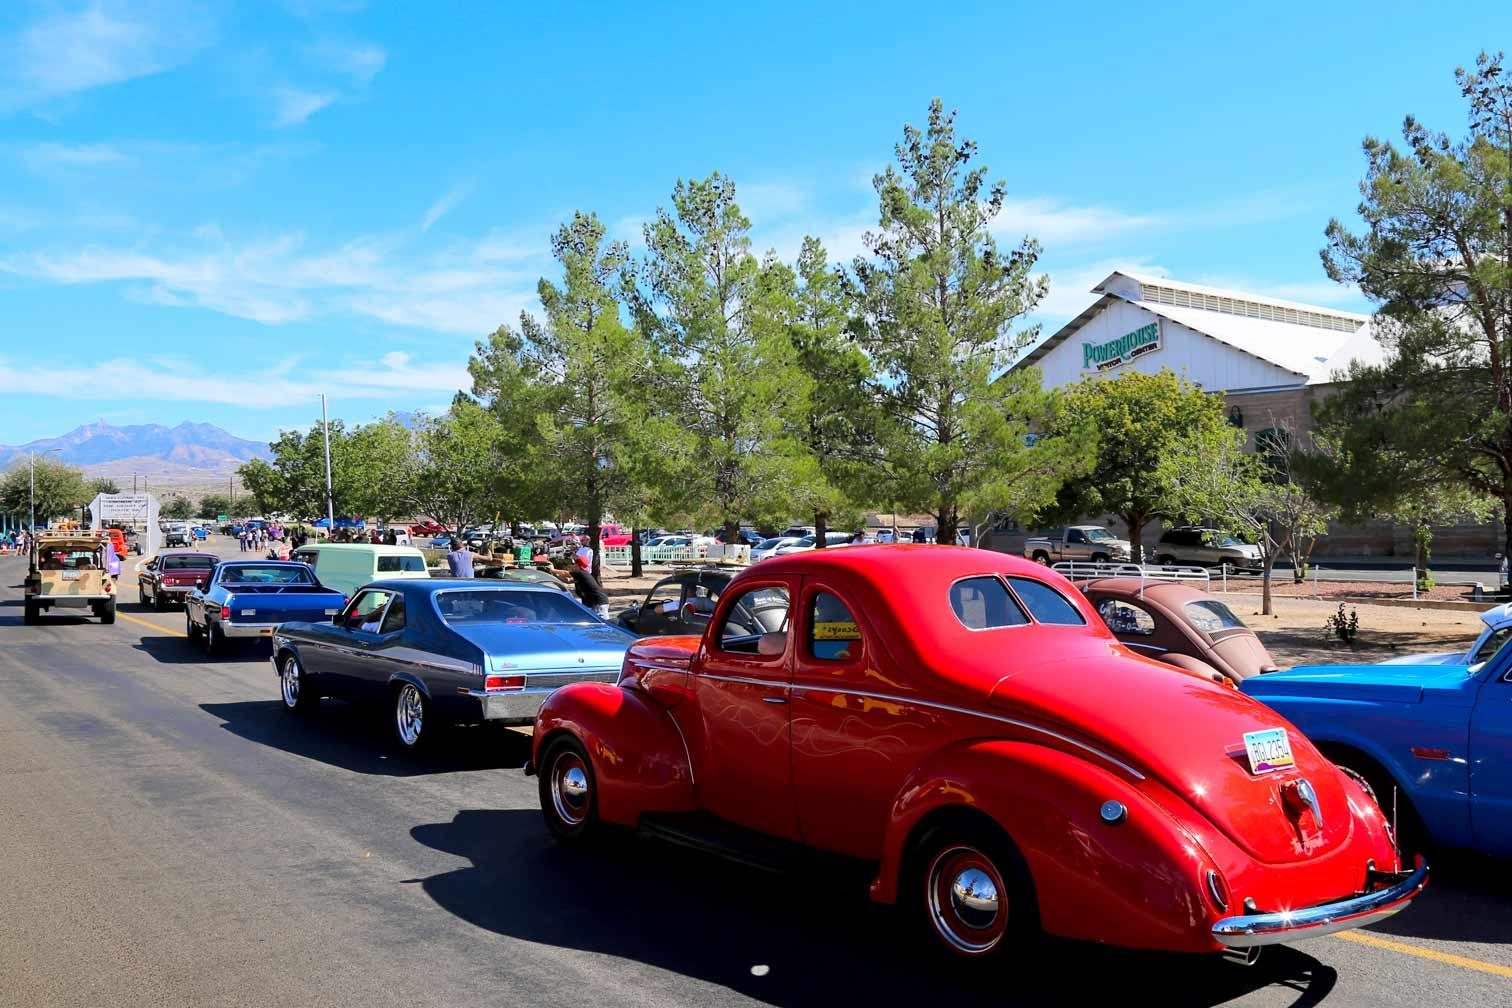 2015 Best of the West Festival